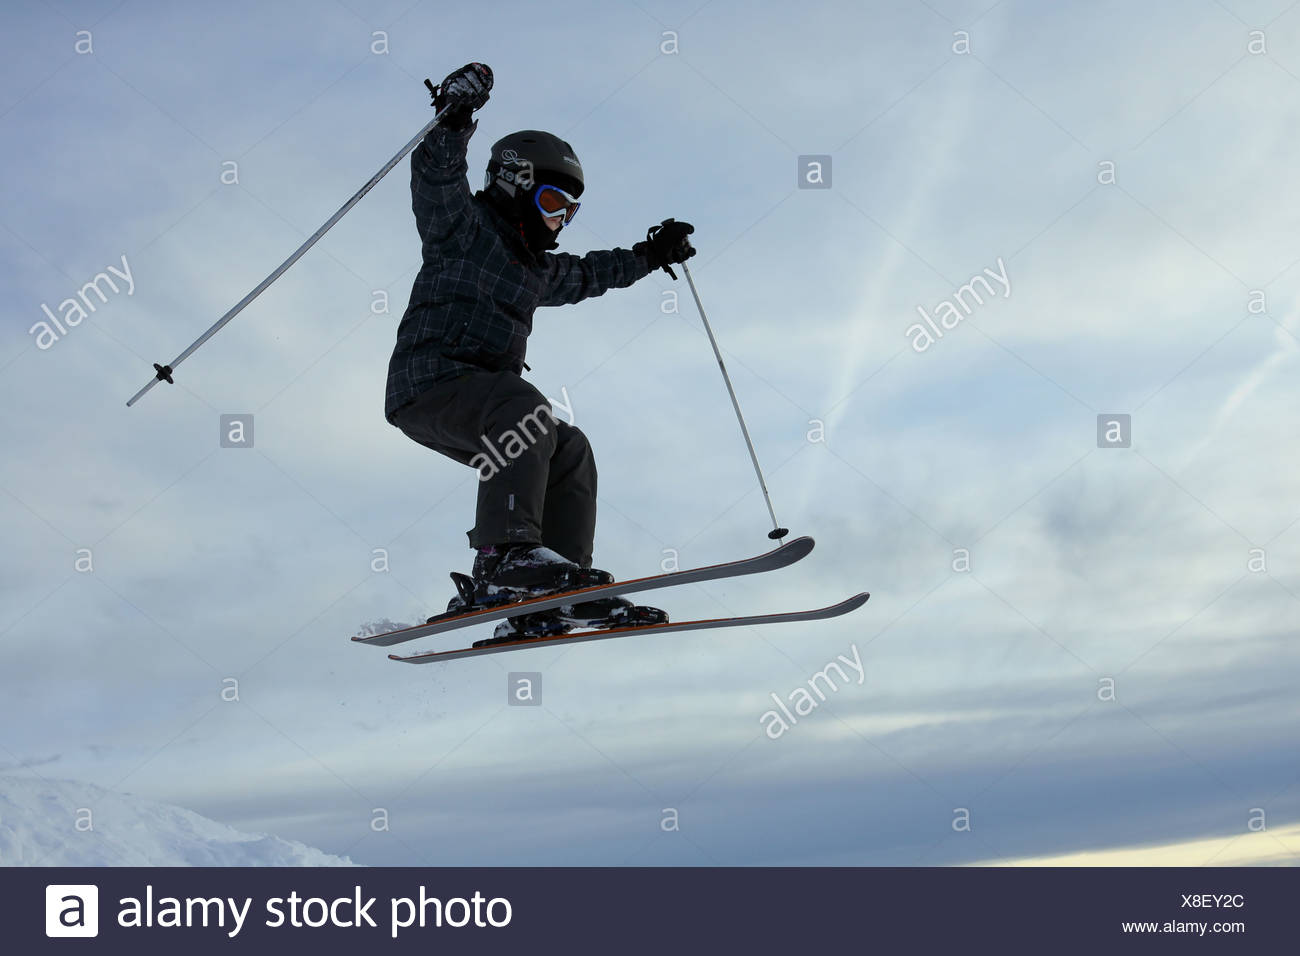 Kitzbuehel, Austria, boy goes skiing - Stock Image